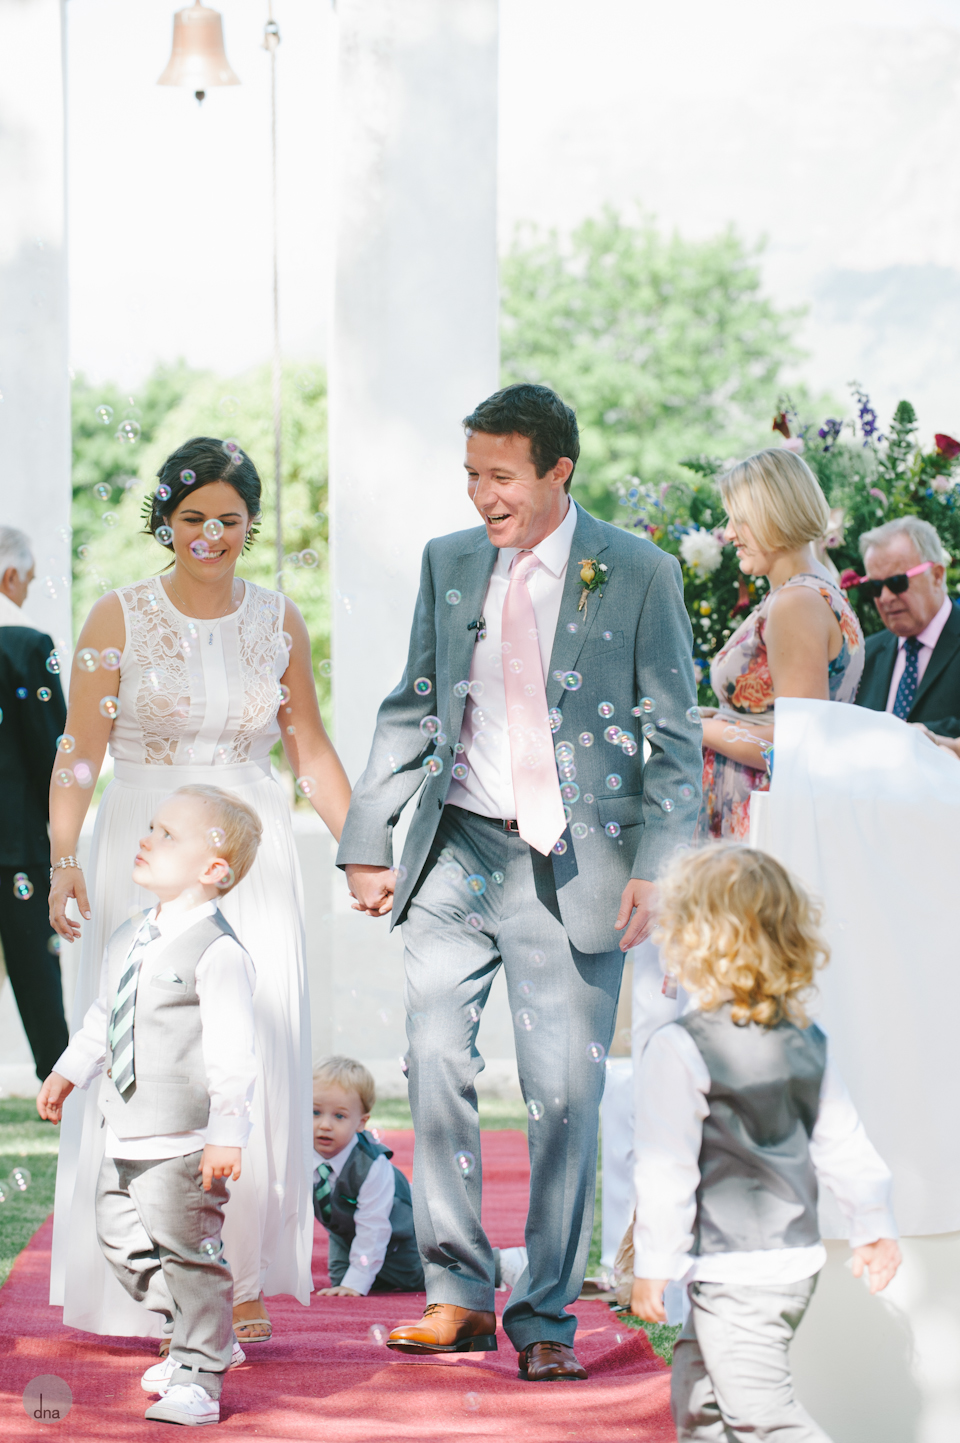 Caroline and Nicholas wedding Zorgvliet Stellenbosch South Africa shot by dna photographers 332.jpg